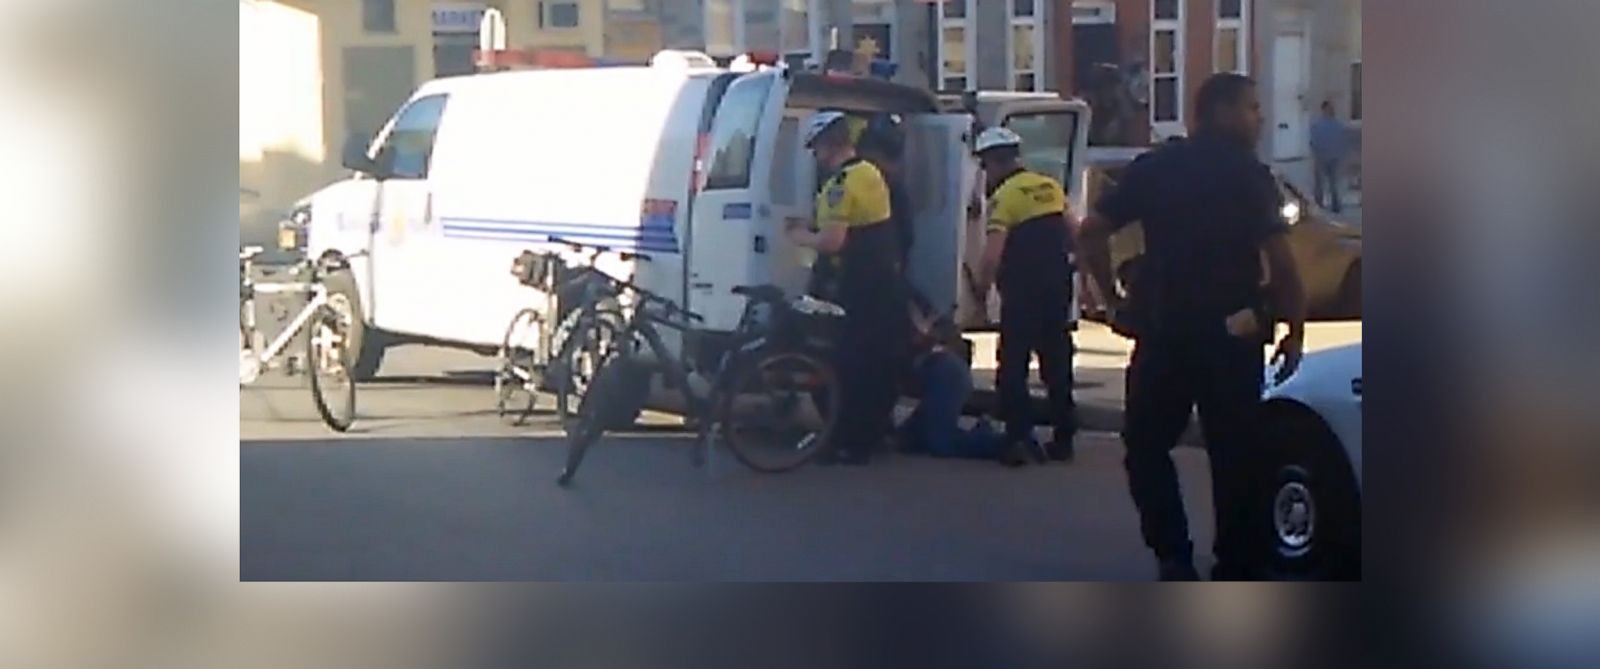 PHOTO: The Baltimore Sun has published cell phone video of police officers surrounding Freddie Gray after he was taken into police custody on April 12, 2015.